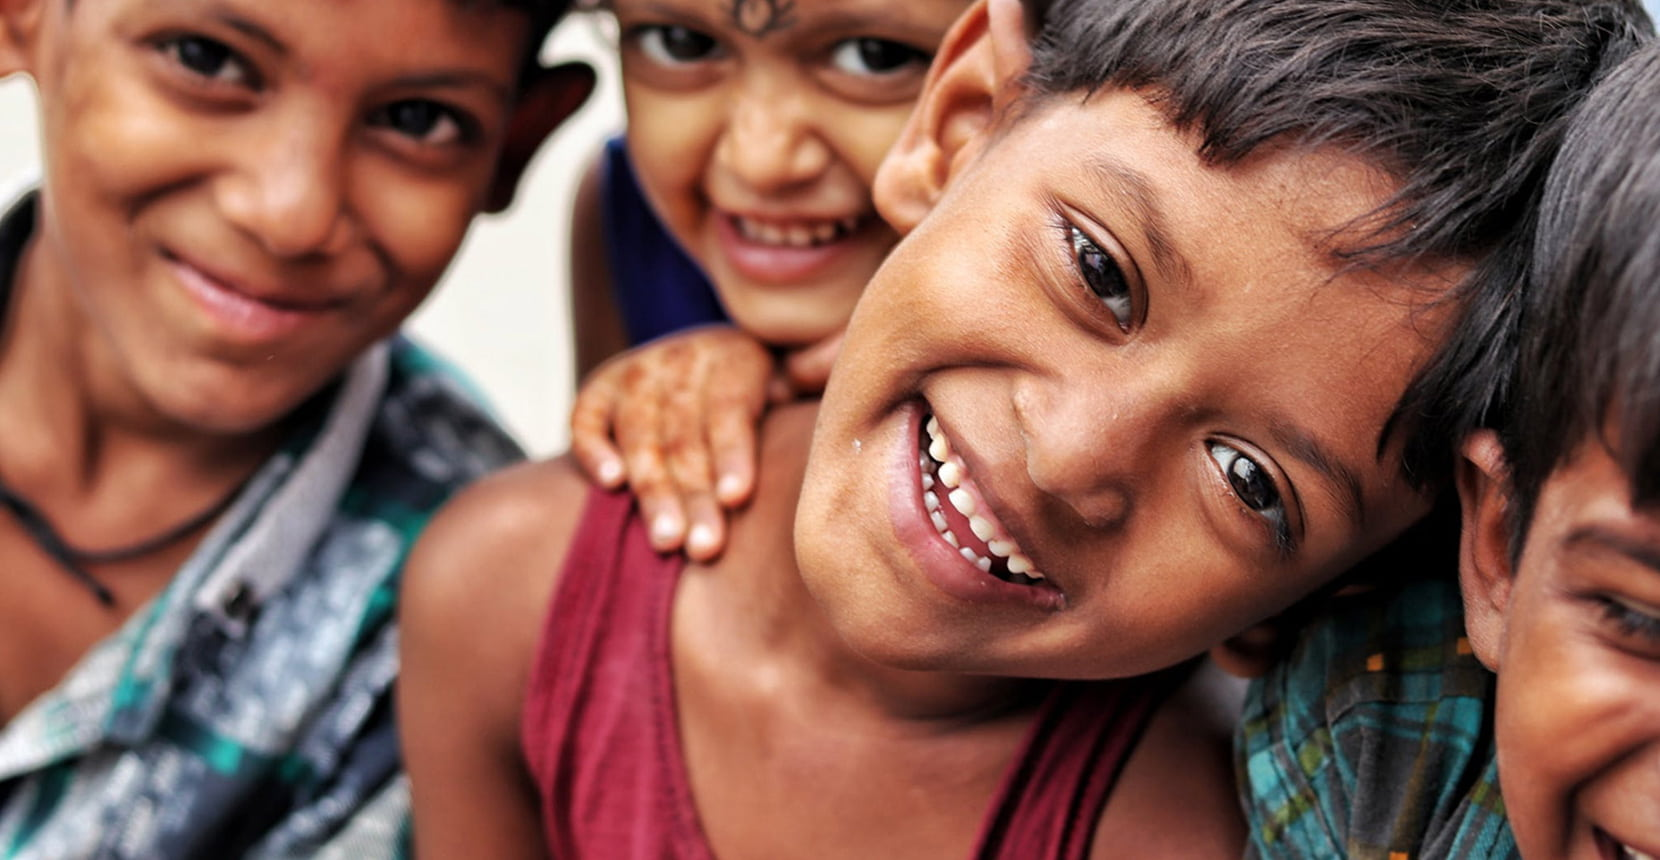 Enrich the world with smiles